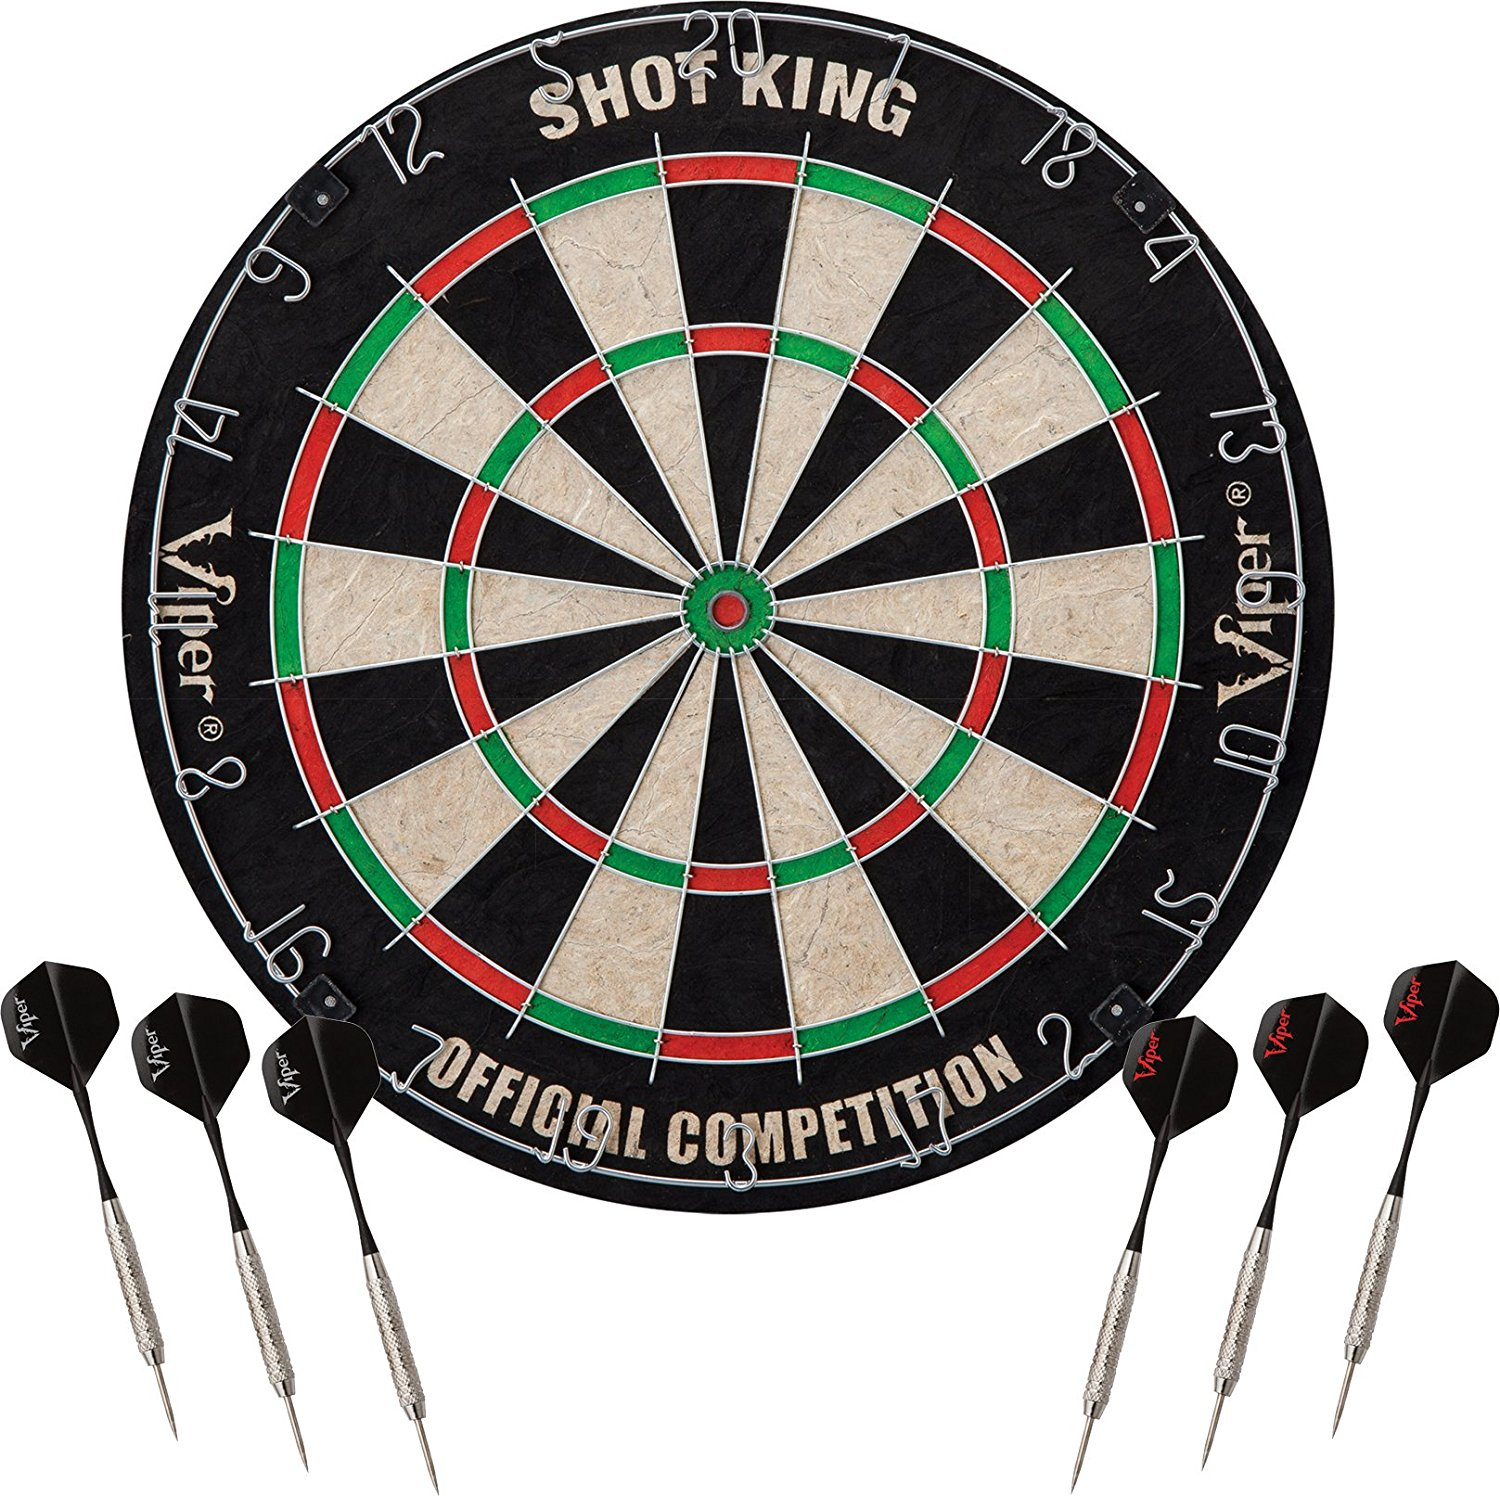 Viper Shot King Sisal Bristle Steel Tip Dartboard